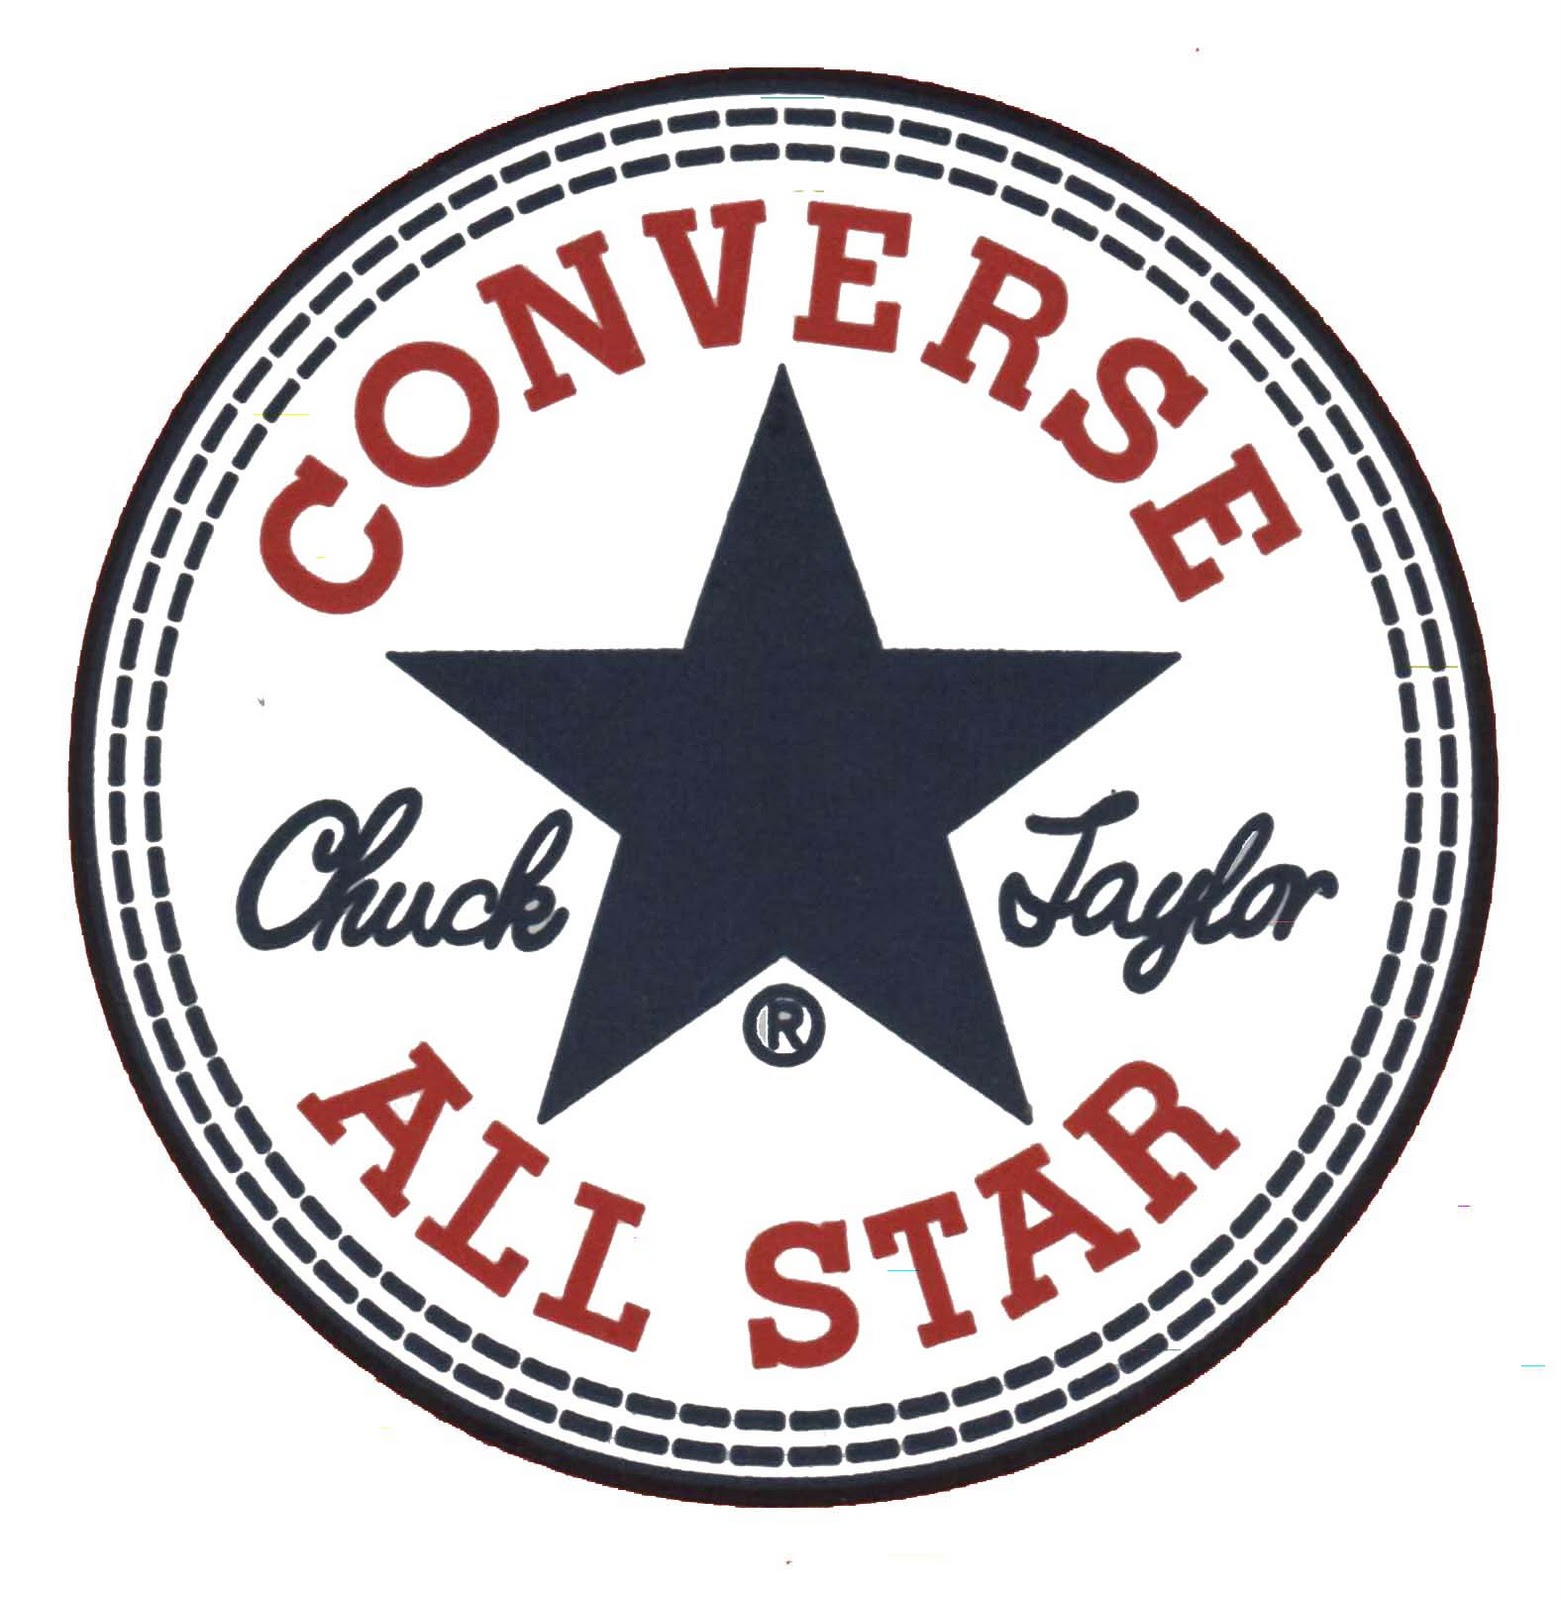 Drawn converse logo For years shoes practicality the